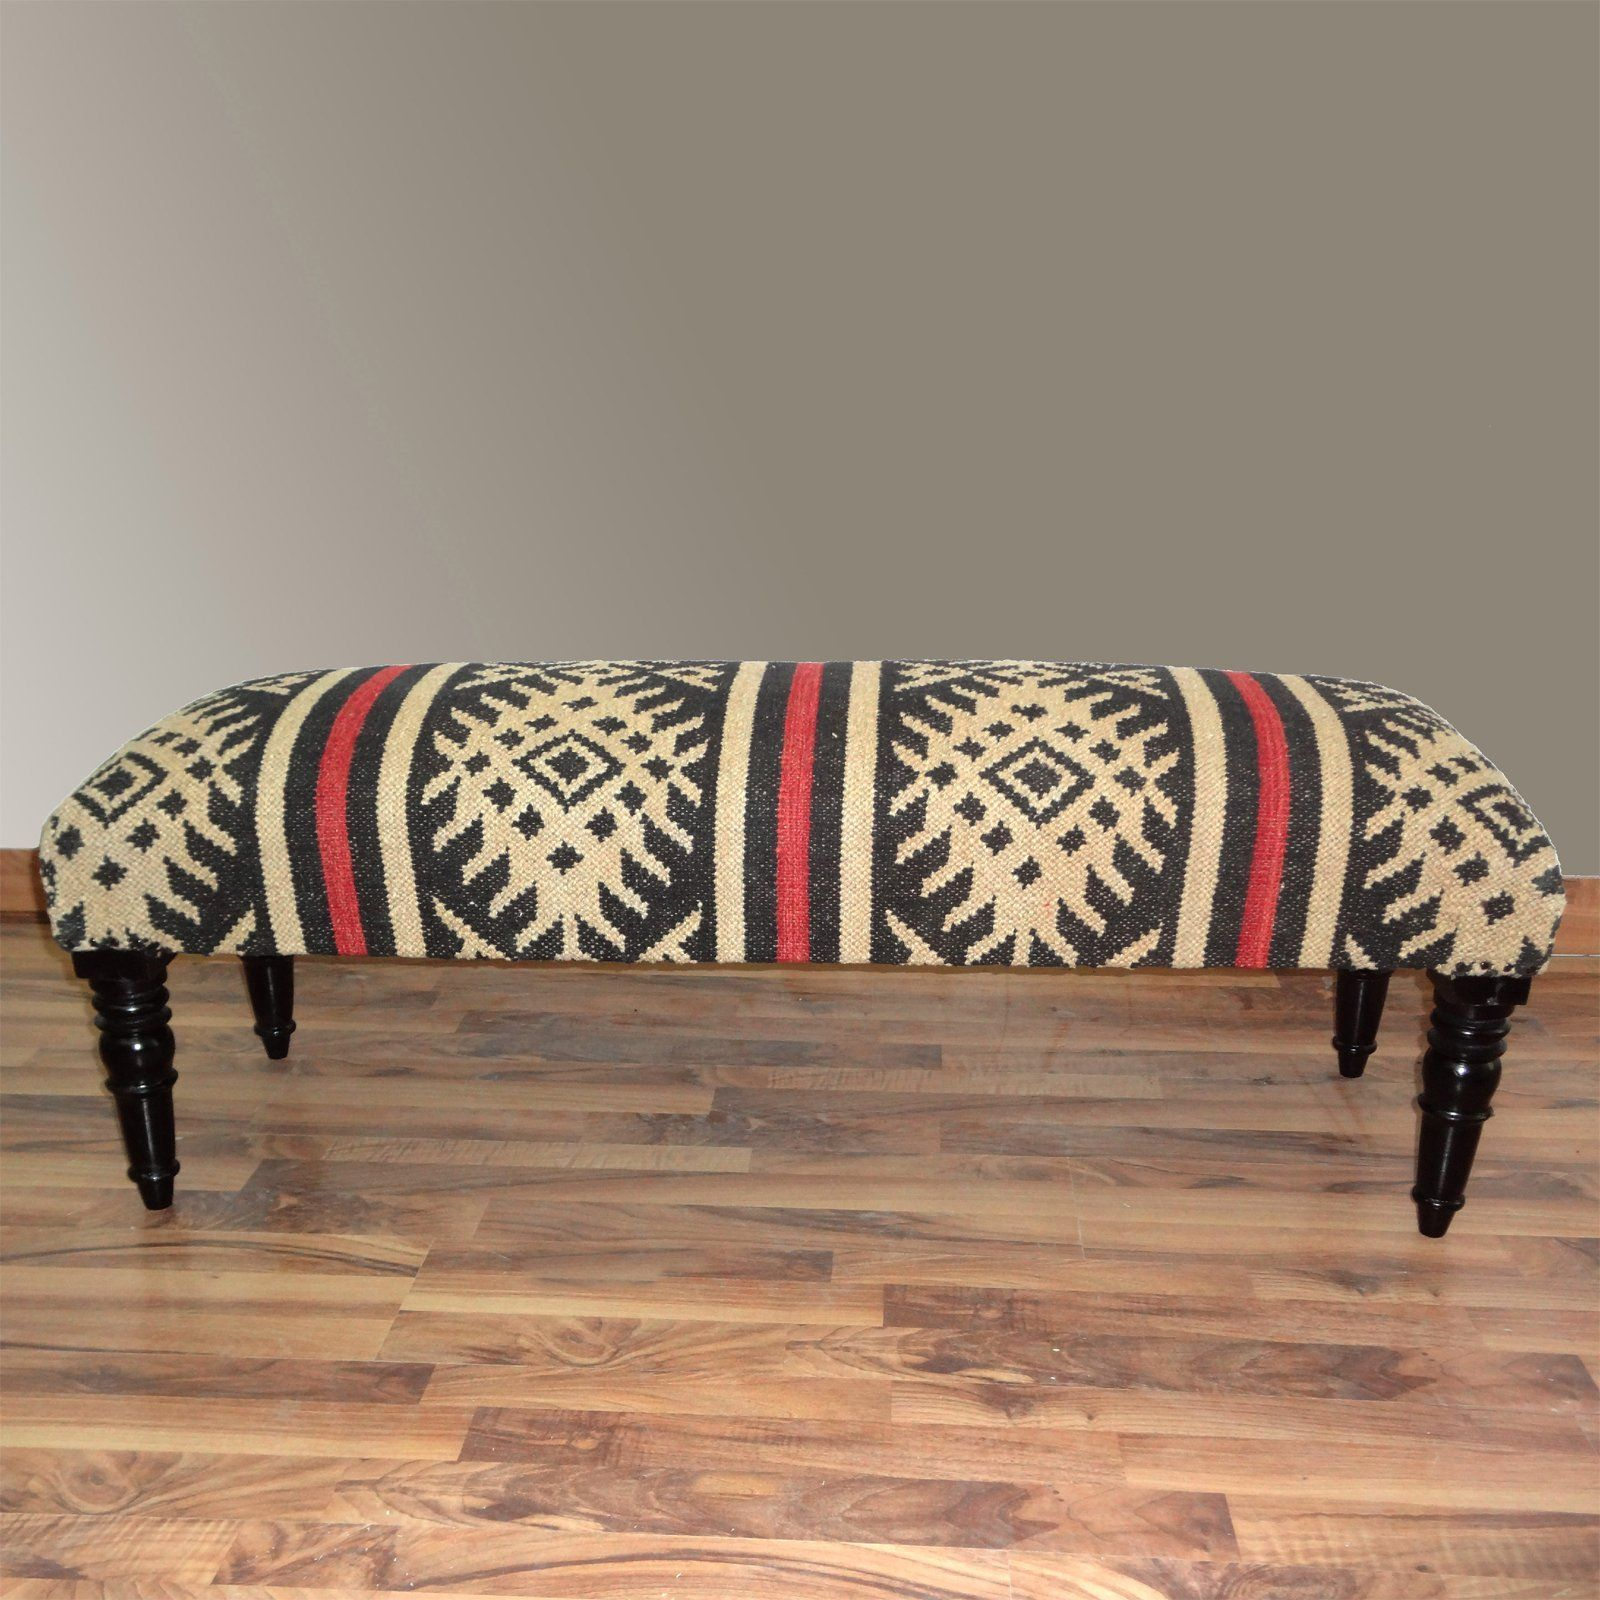 Global Chic Seats: Zirara Wooden Bench.